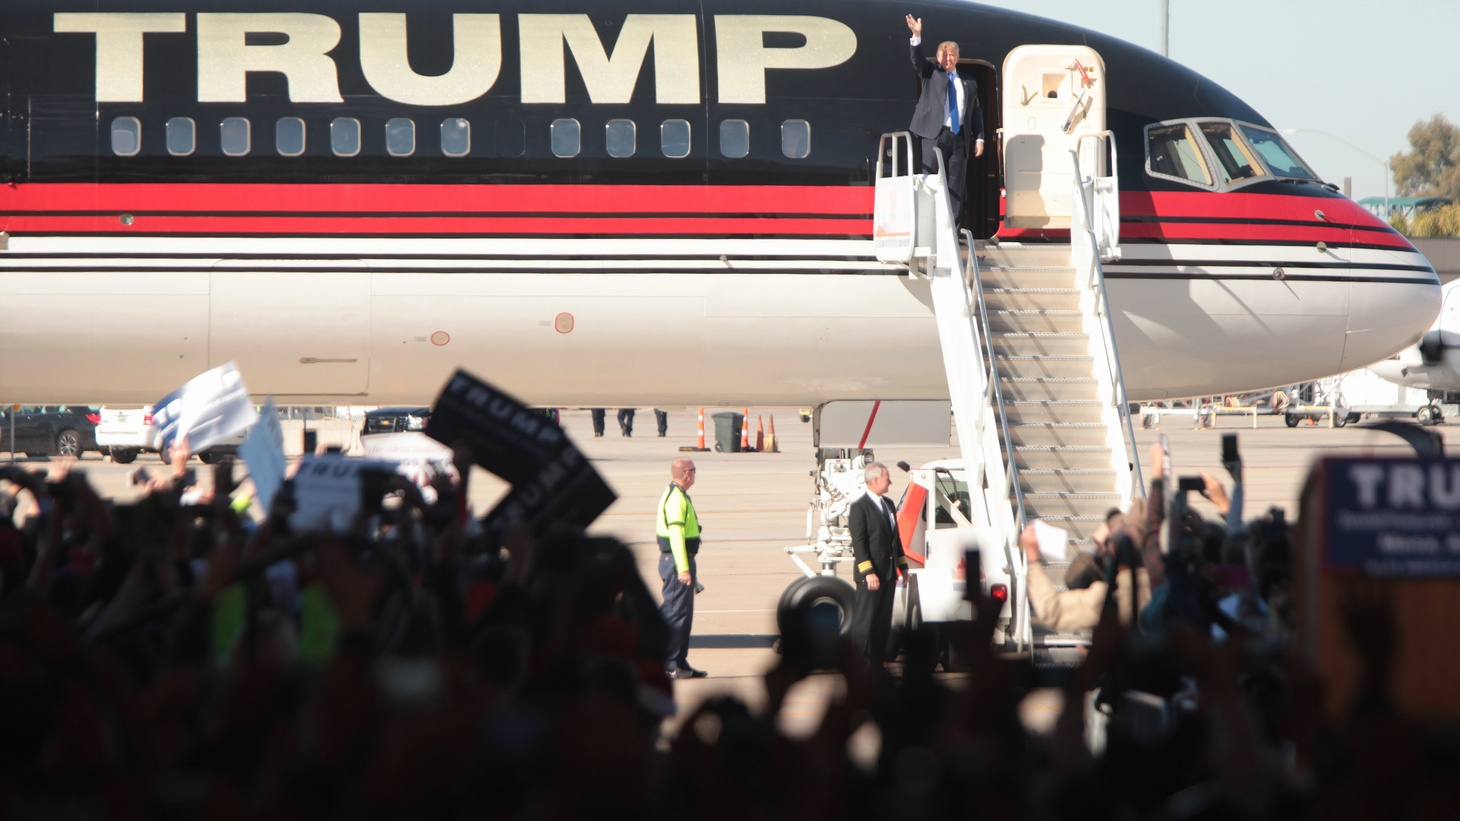 Donald Trump's recent trip to Mar-a-Lago and Eric Trump's trip to Uruguay raise questions of what taxpayers should pay for, as well as the blurred lines between the Trumps' business holdings and official U.S. business.